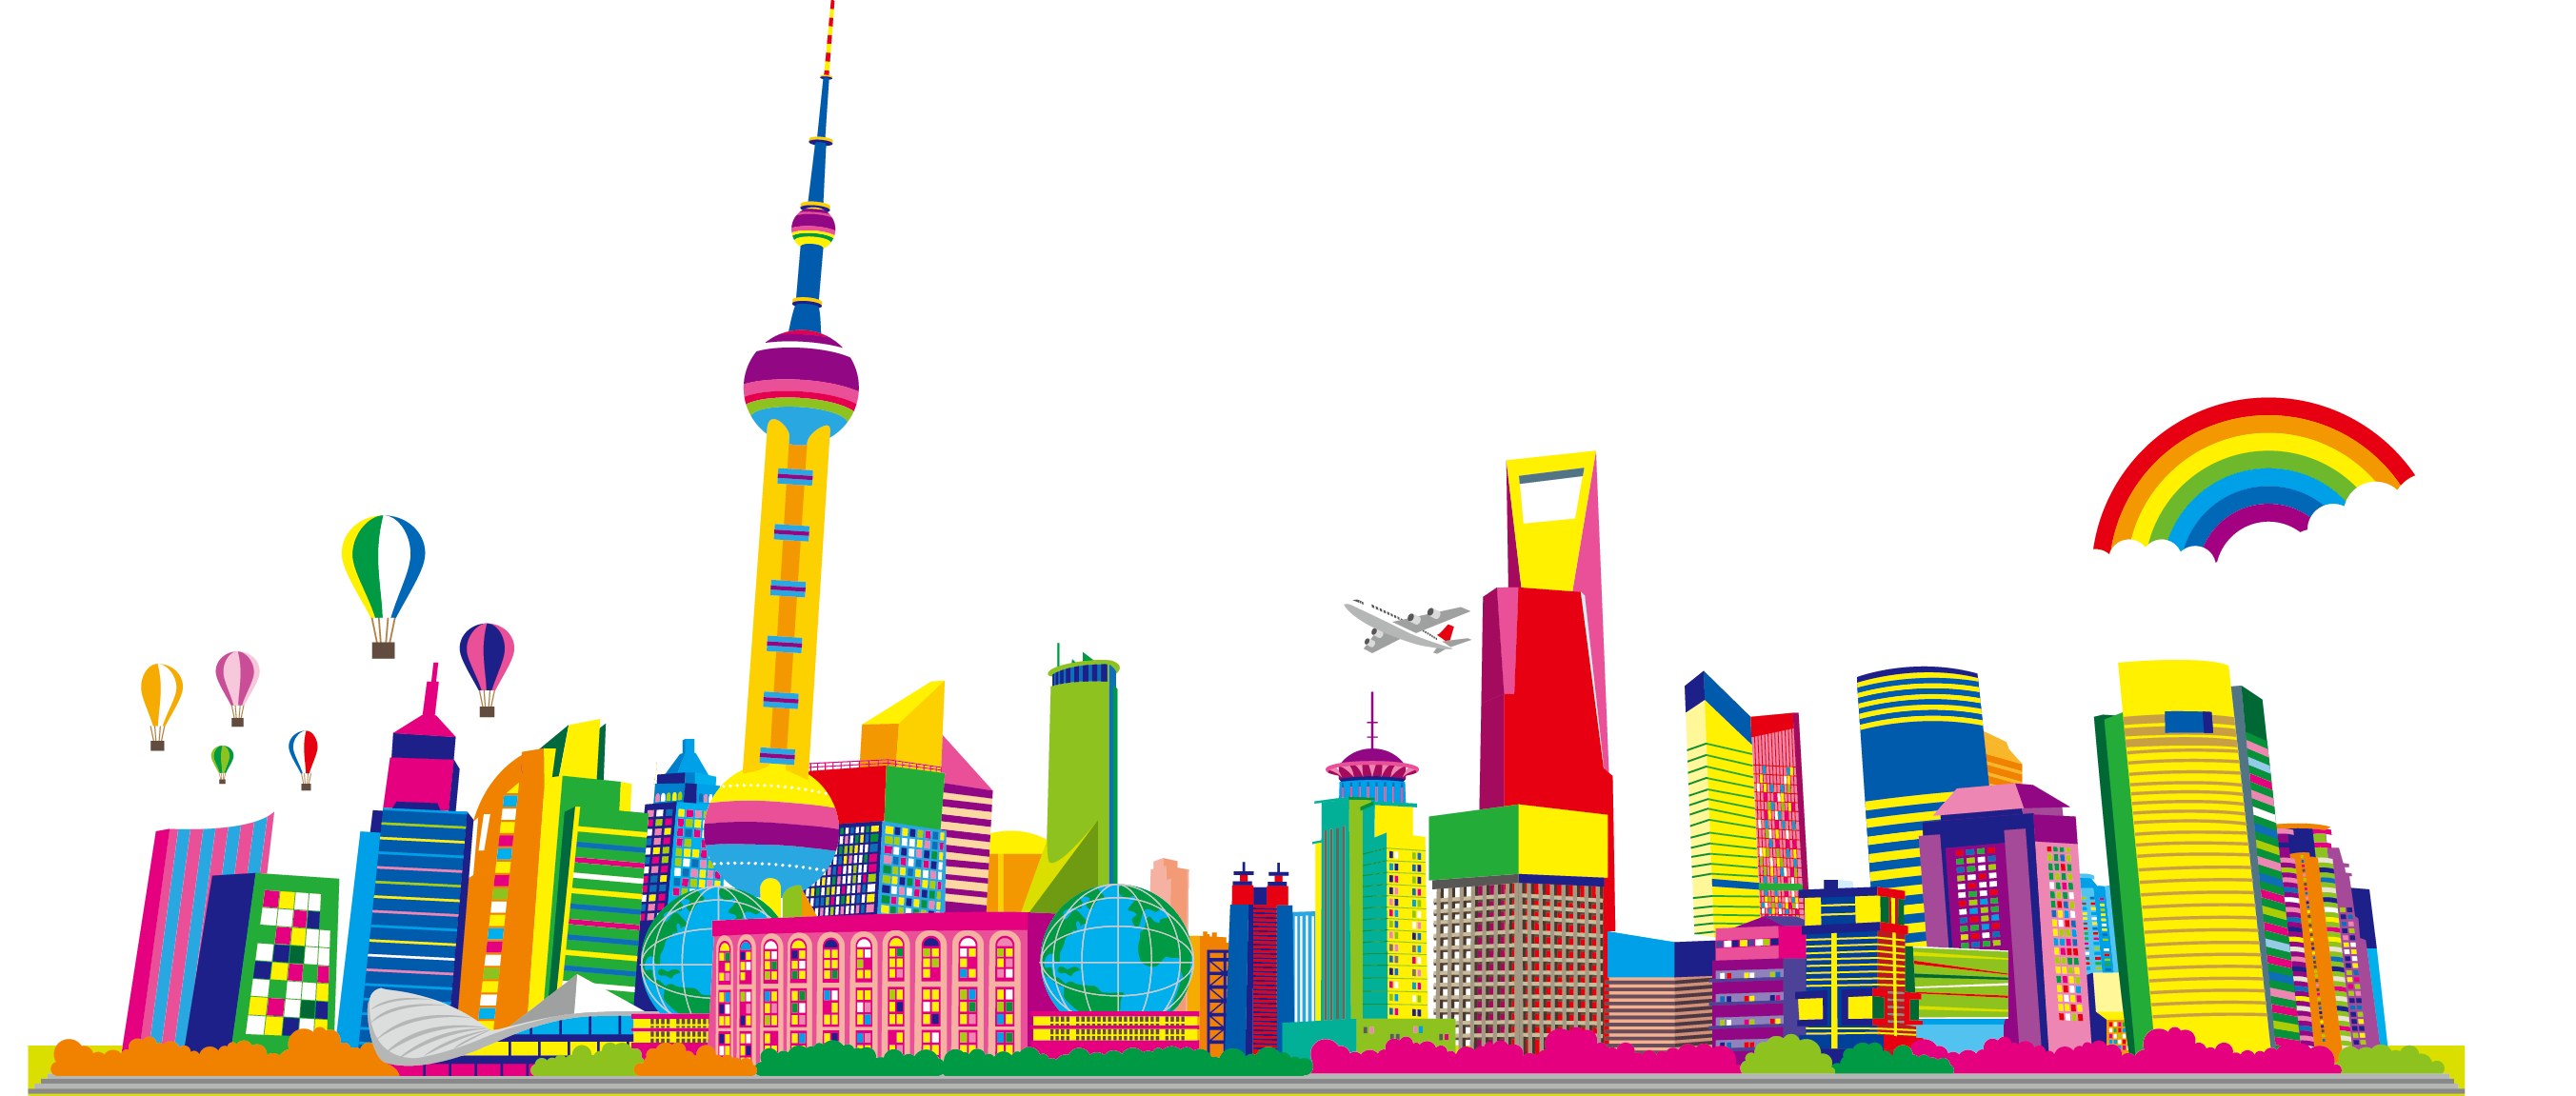 Cityscape clipart free download on WebStockReview